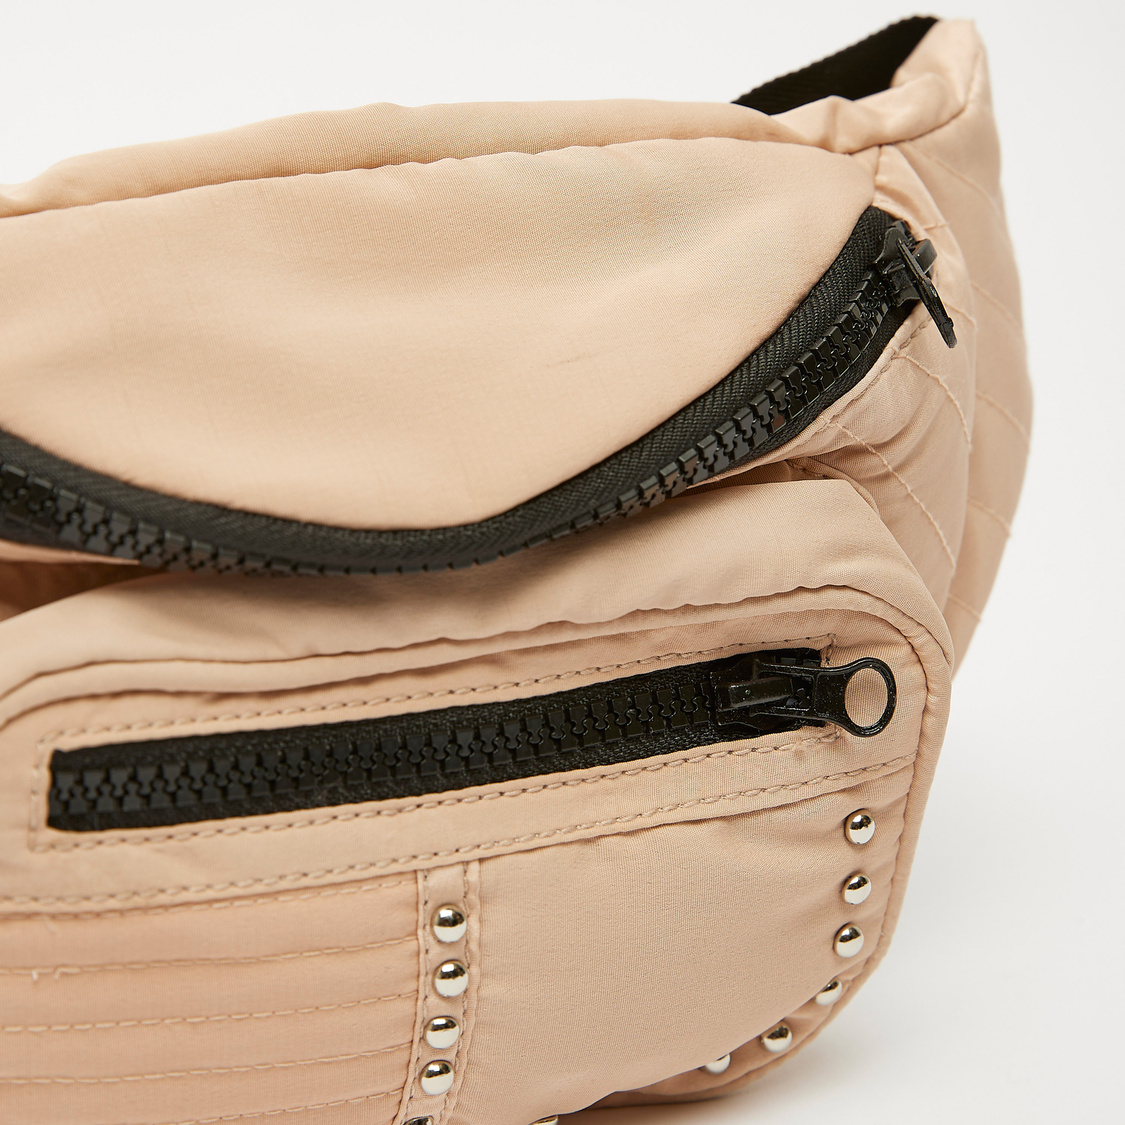 Stitch Detail Fanny Pack with Zip Closure